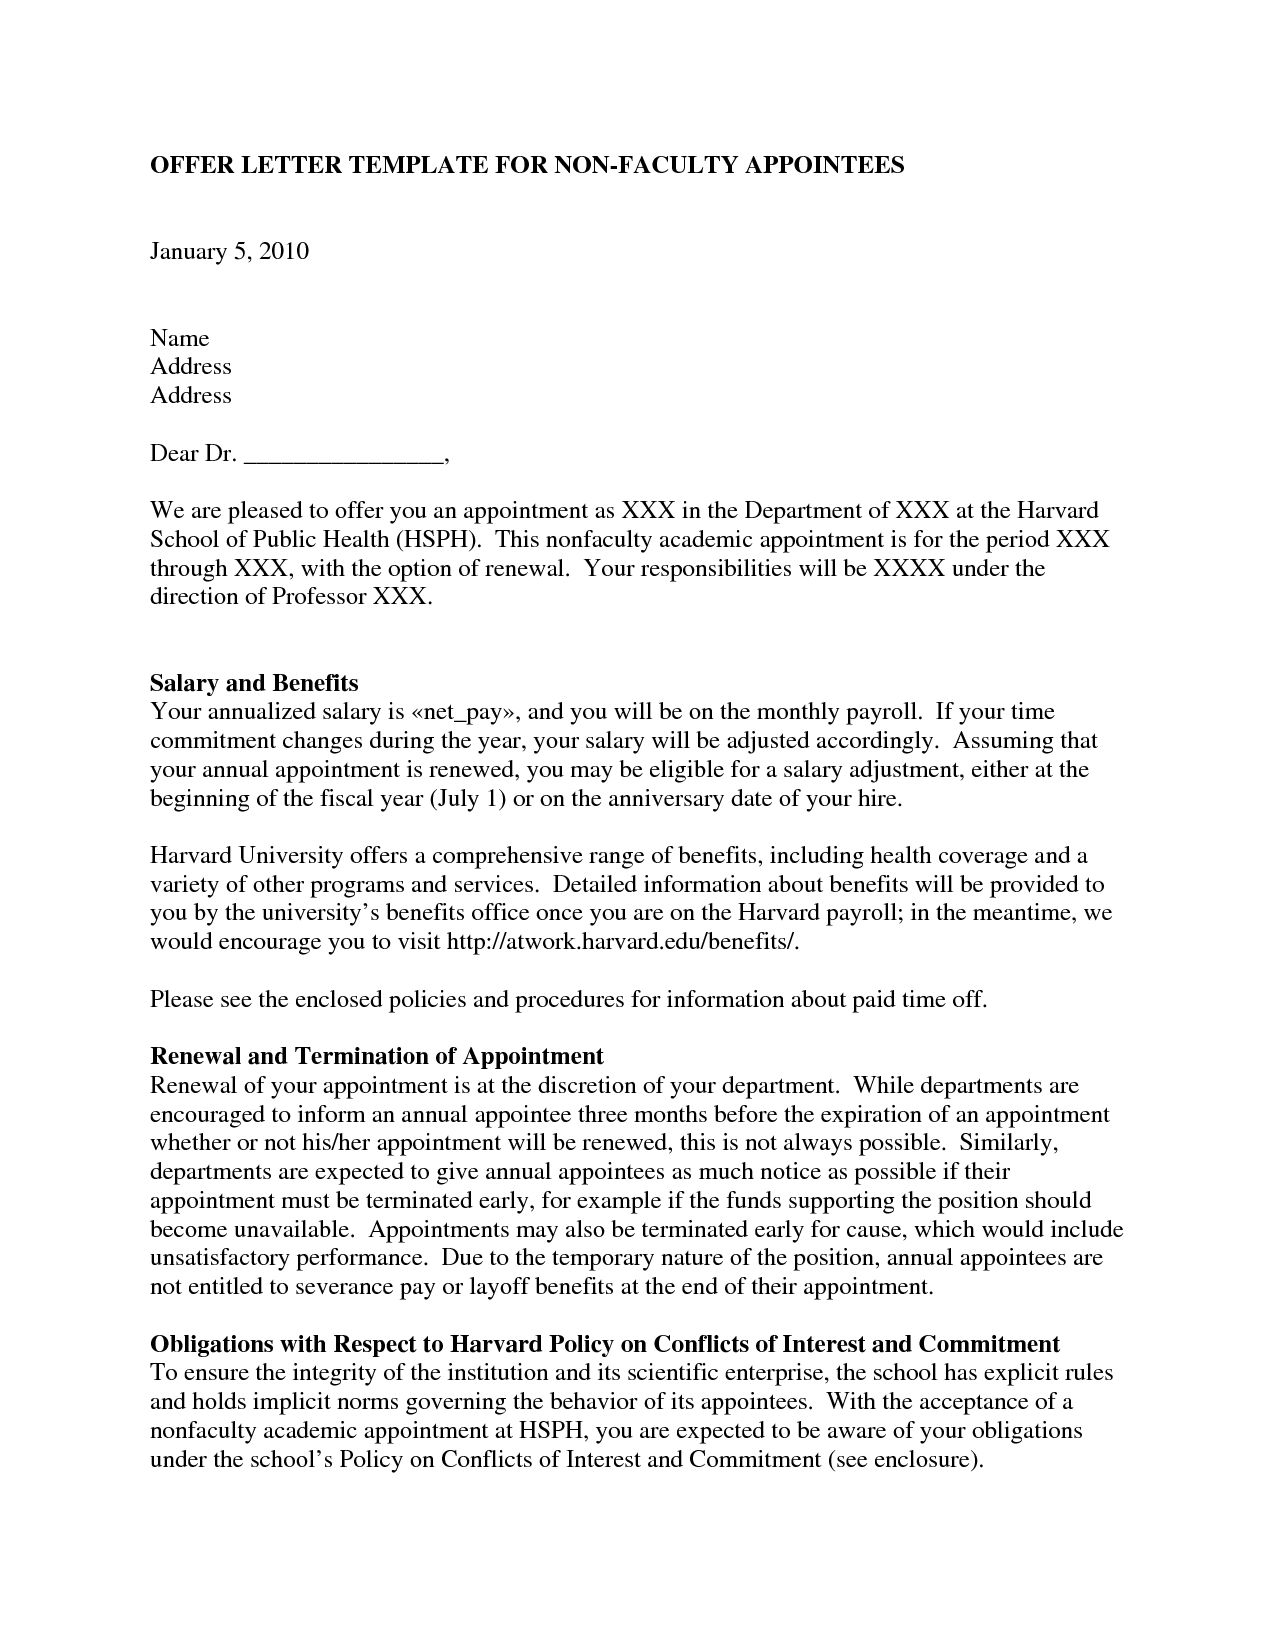 Admission Acceptance Letter Sample letter accepting an offer of – Offer Acceptance Letter